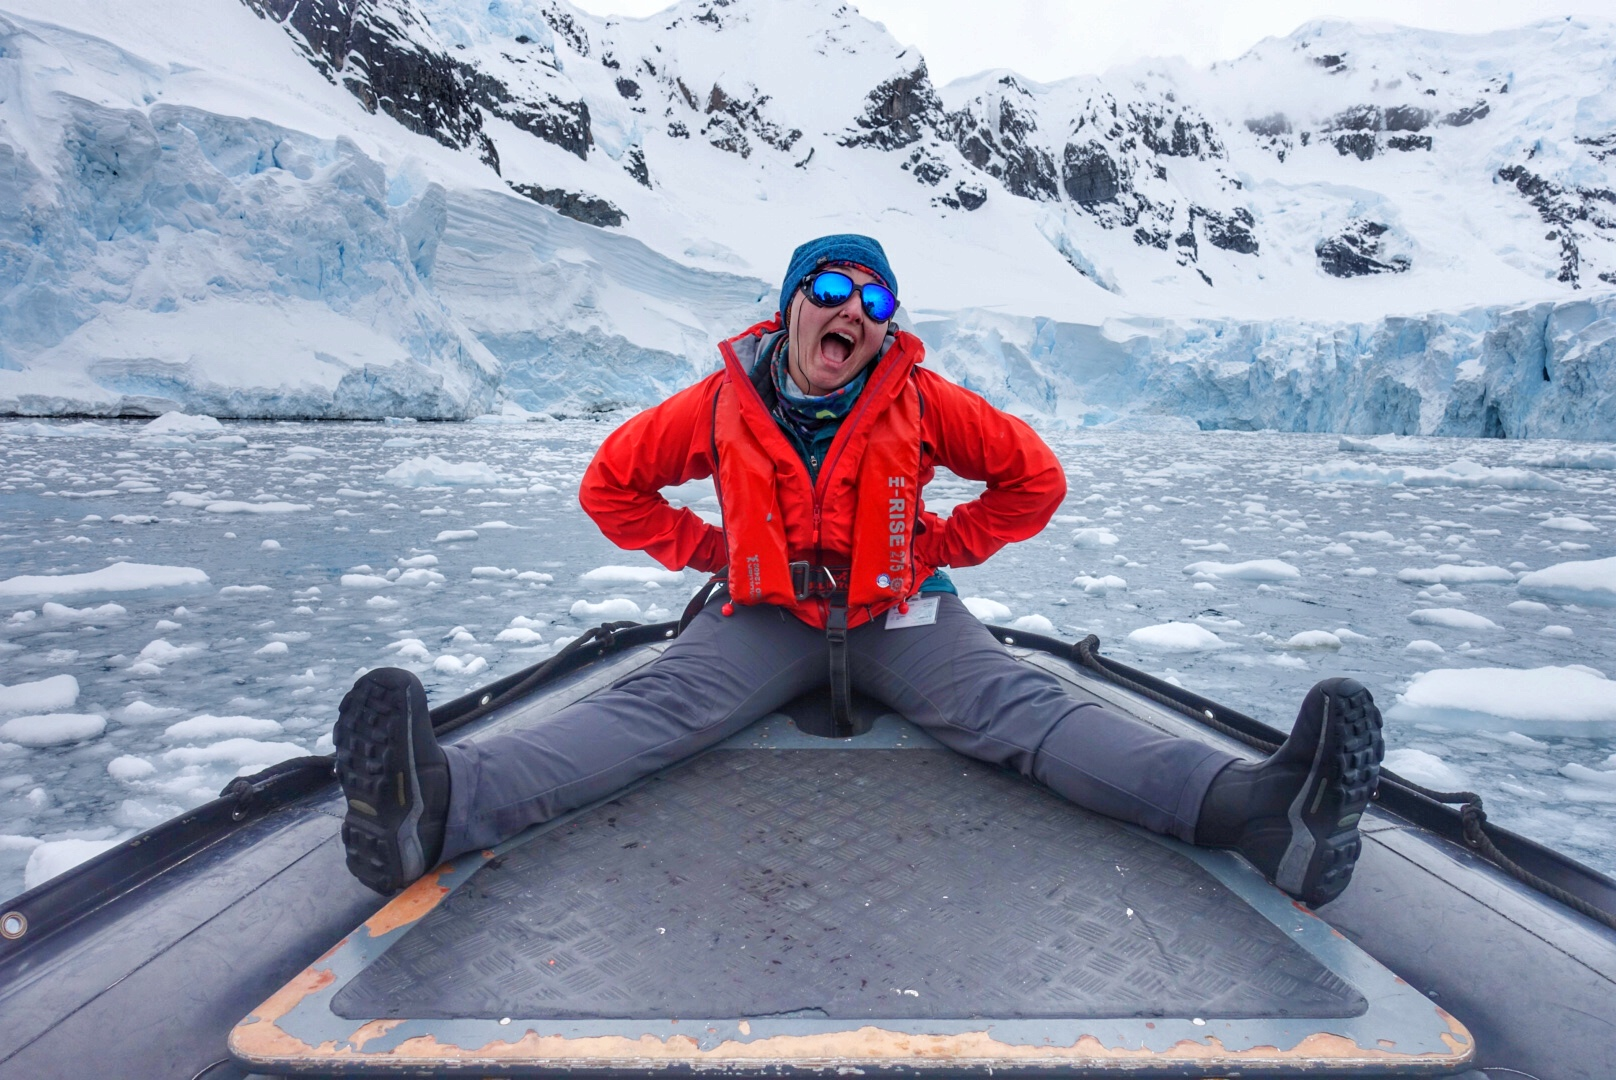 Things to know before going to Antarctica